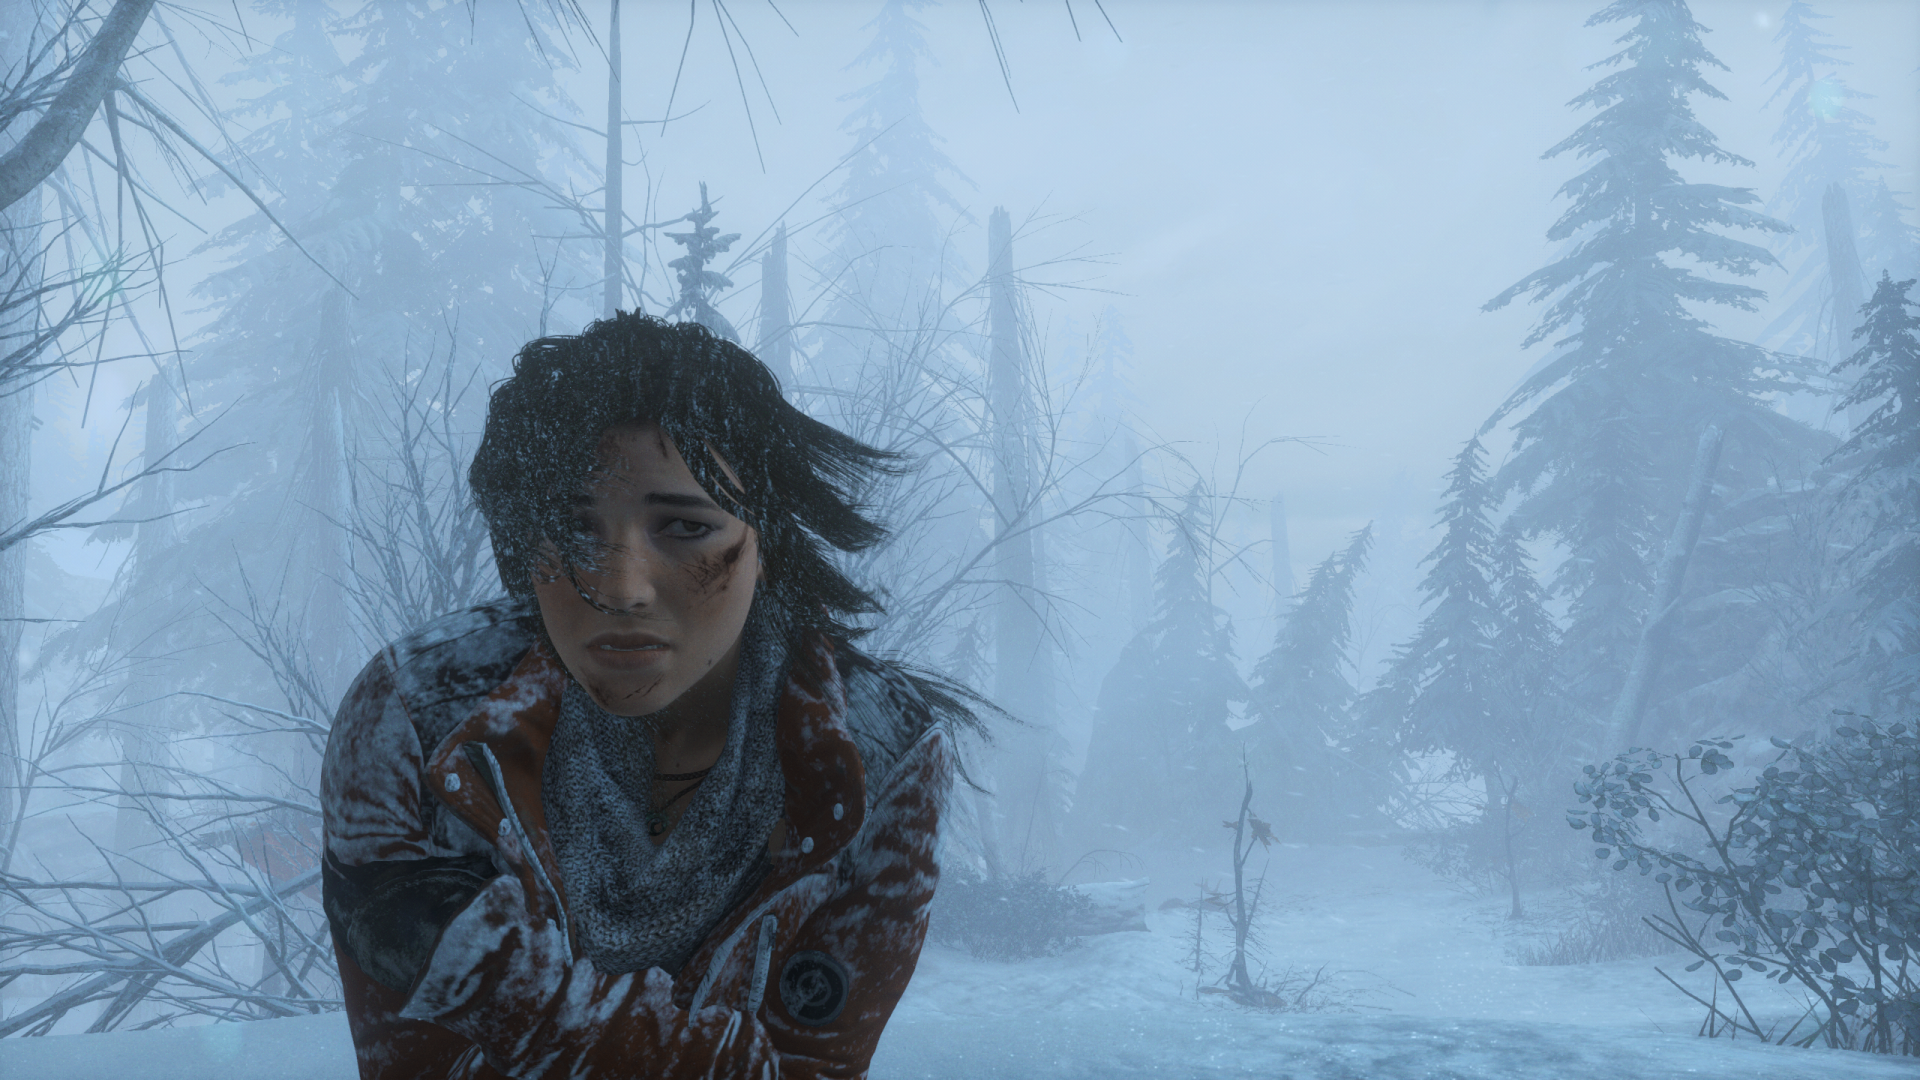 Rise of the Tomb Raider - Pure Hair - Very High-pcgh